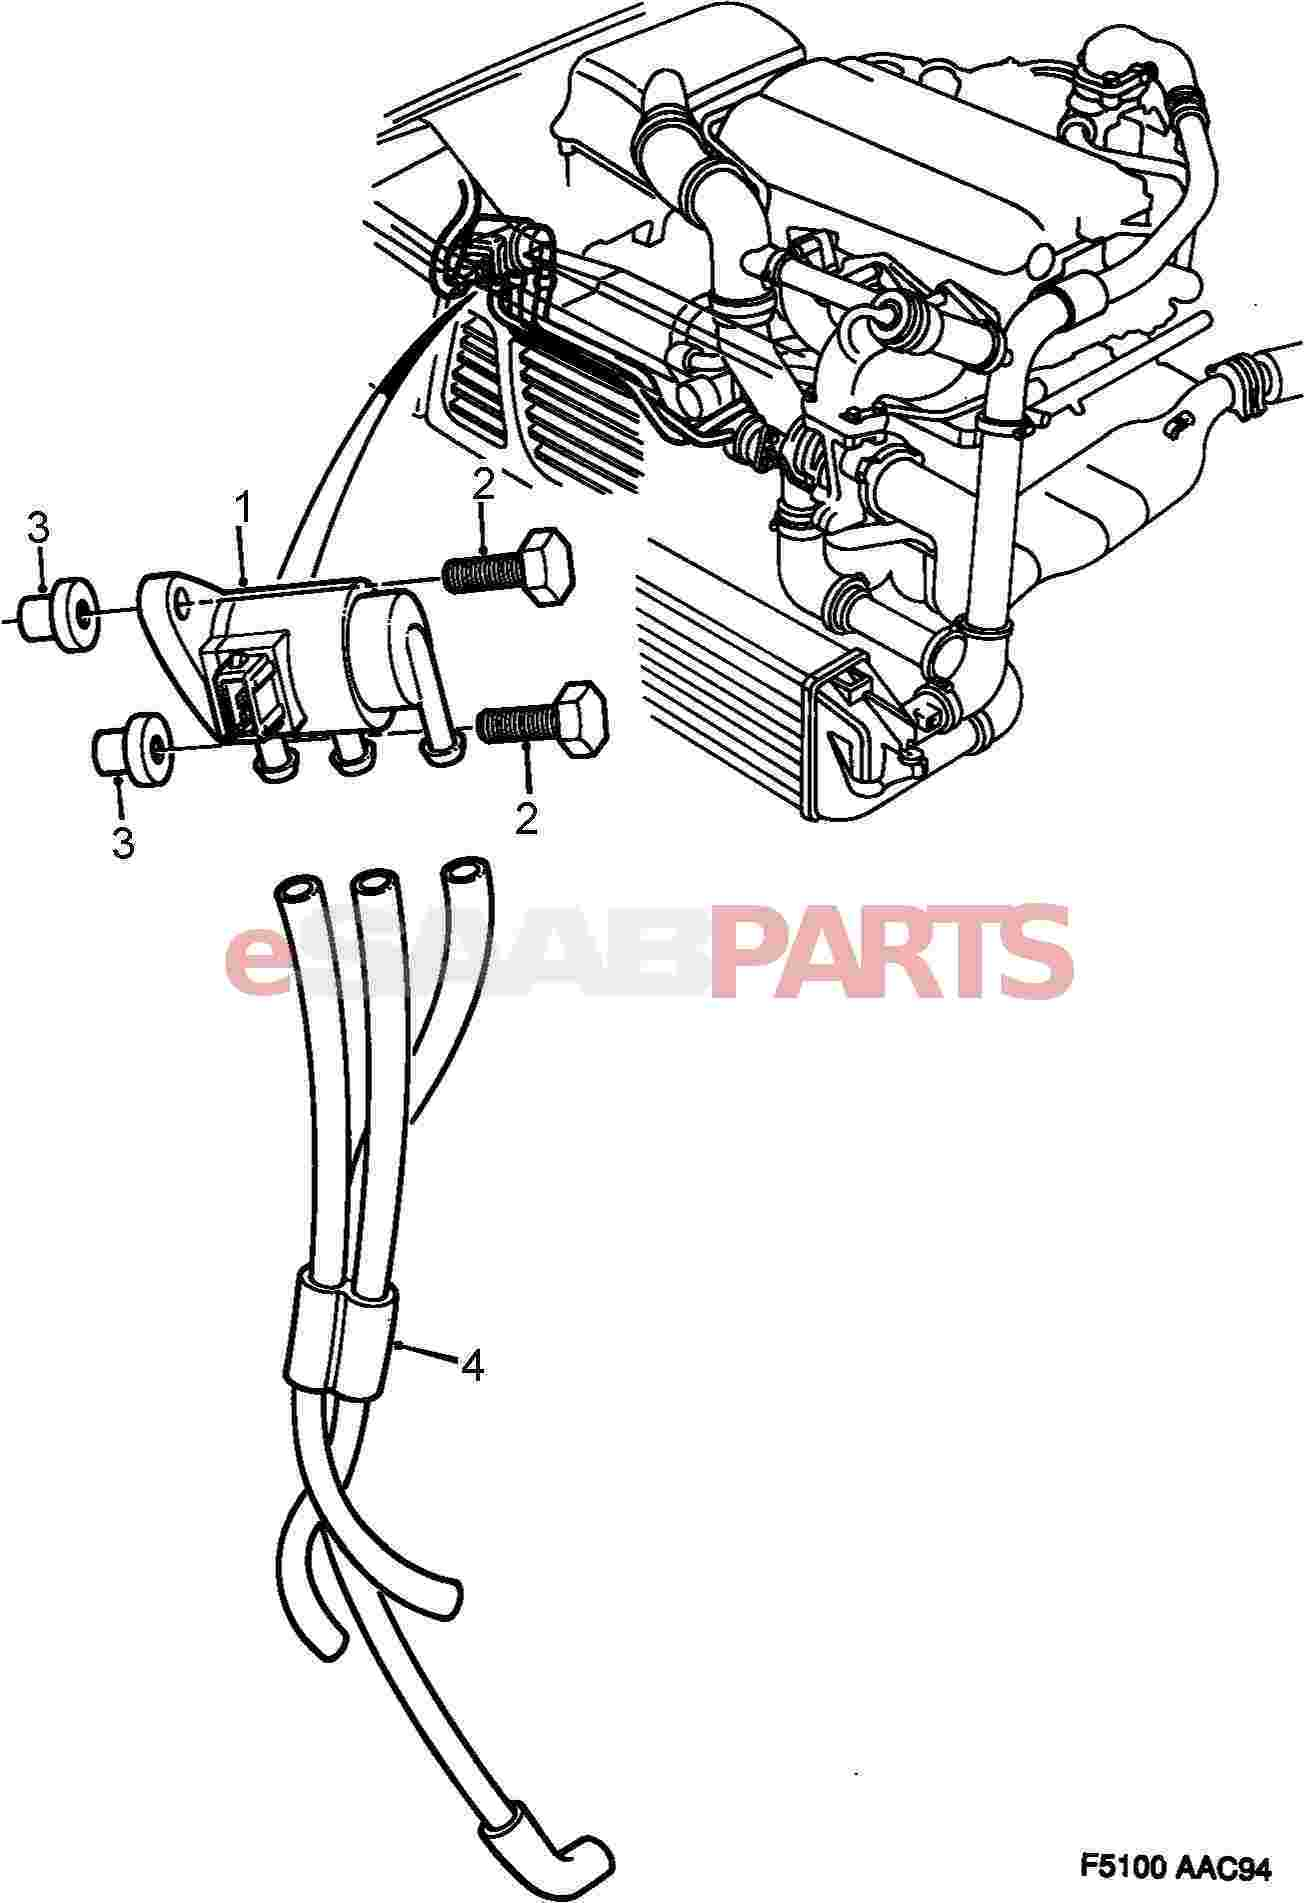 Saab 9 3 Parts Diagram Saab Free Engine Image For User